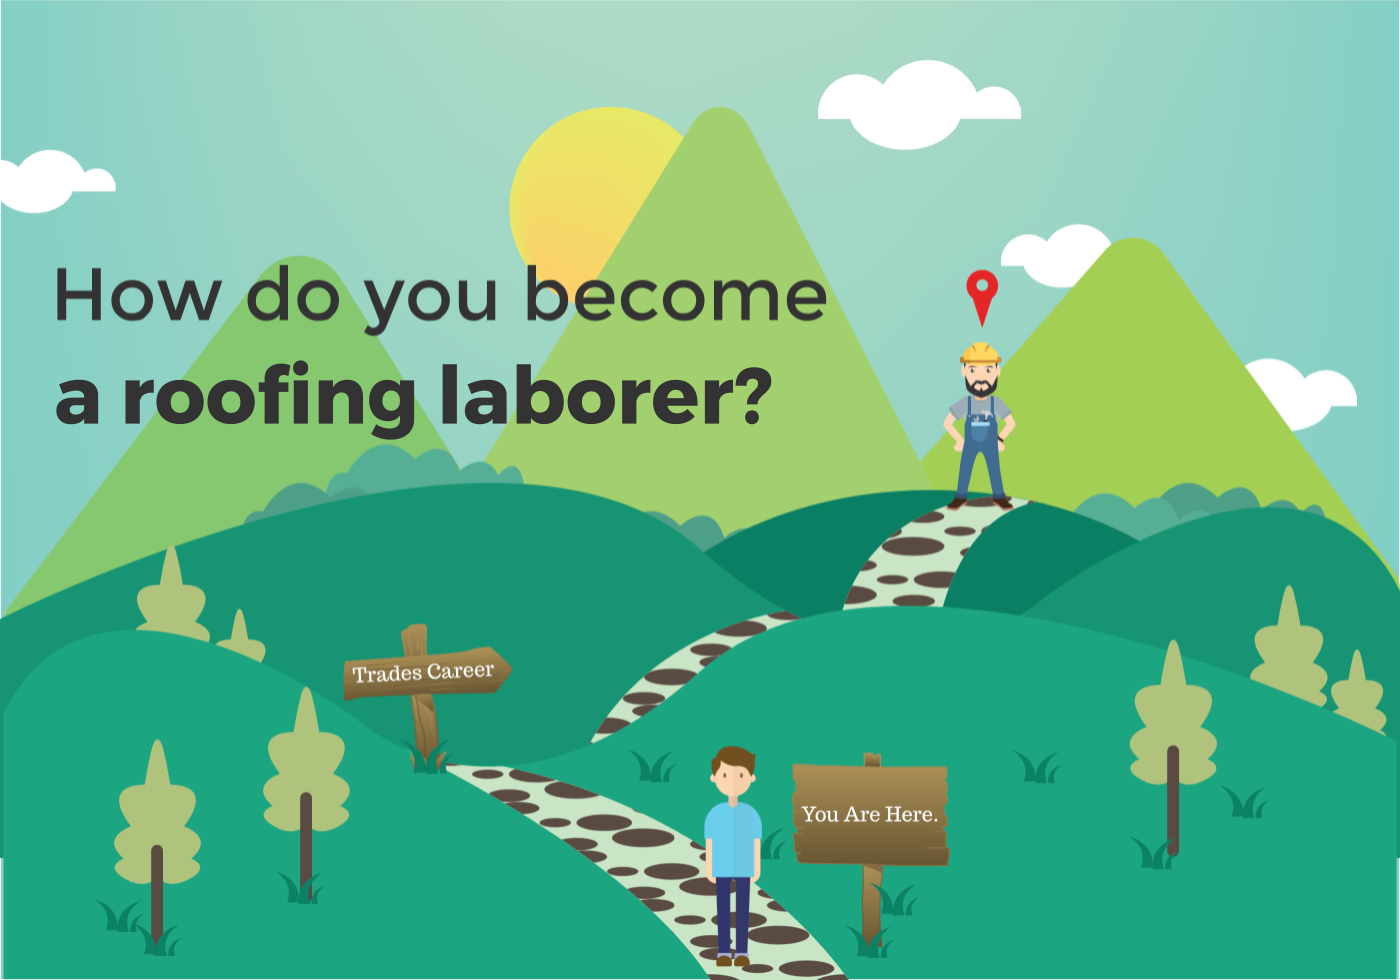 how to become a Roofing Laborer